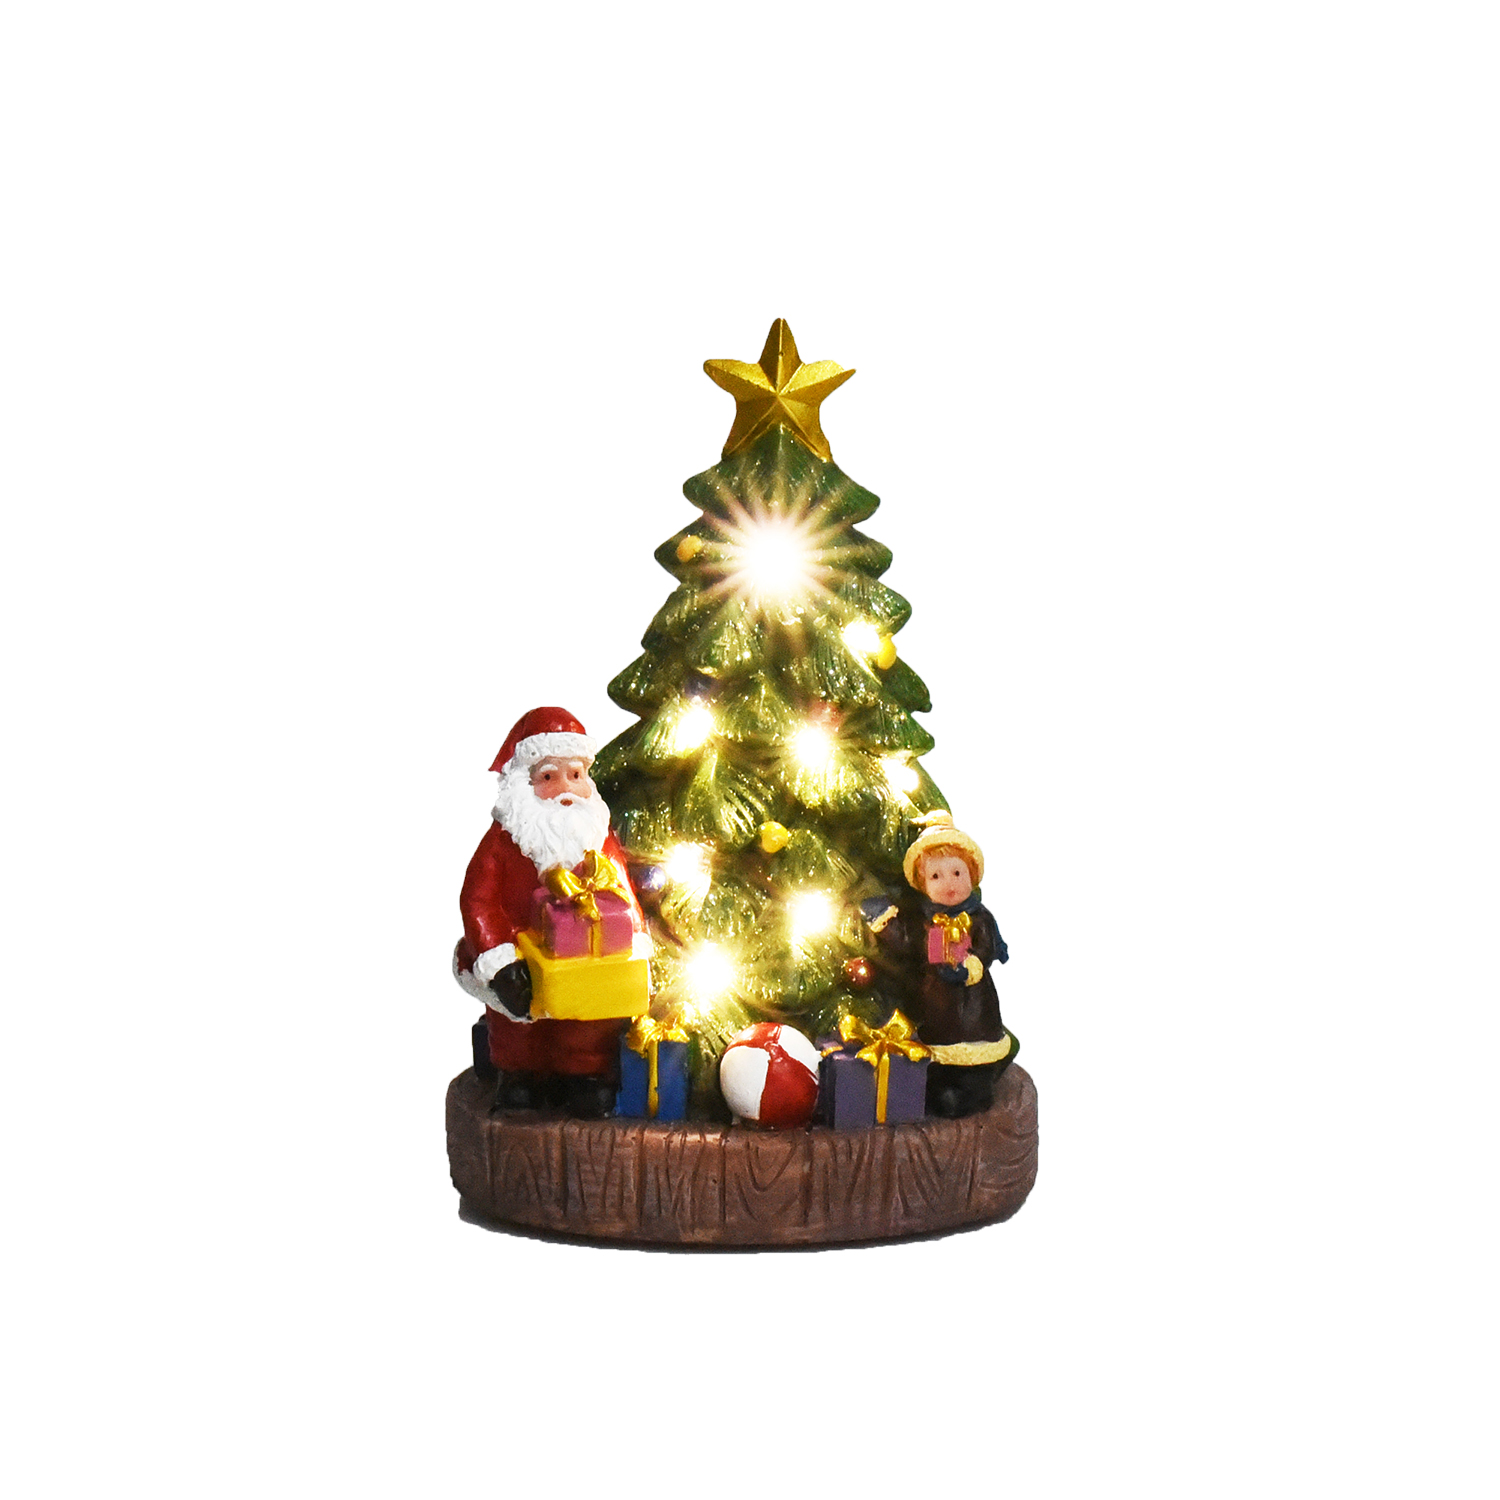 Lightup Christmas Tree with Santa